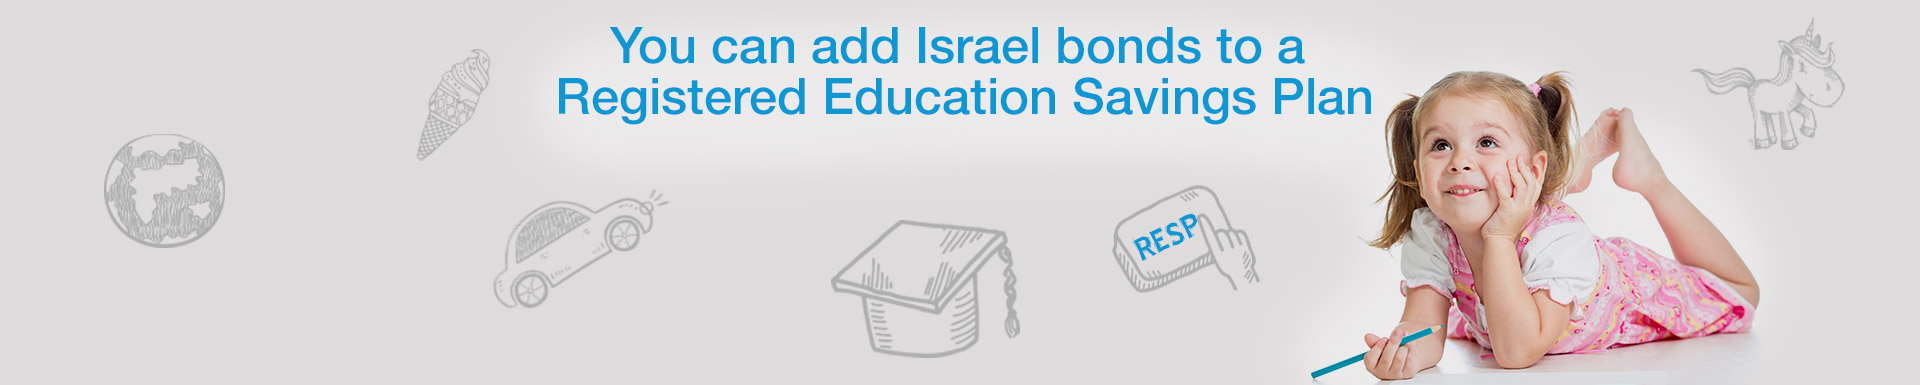 You can add Israel bonds to a Registered Education Savings Plan